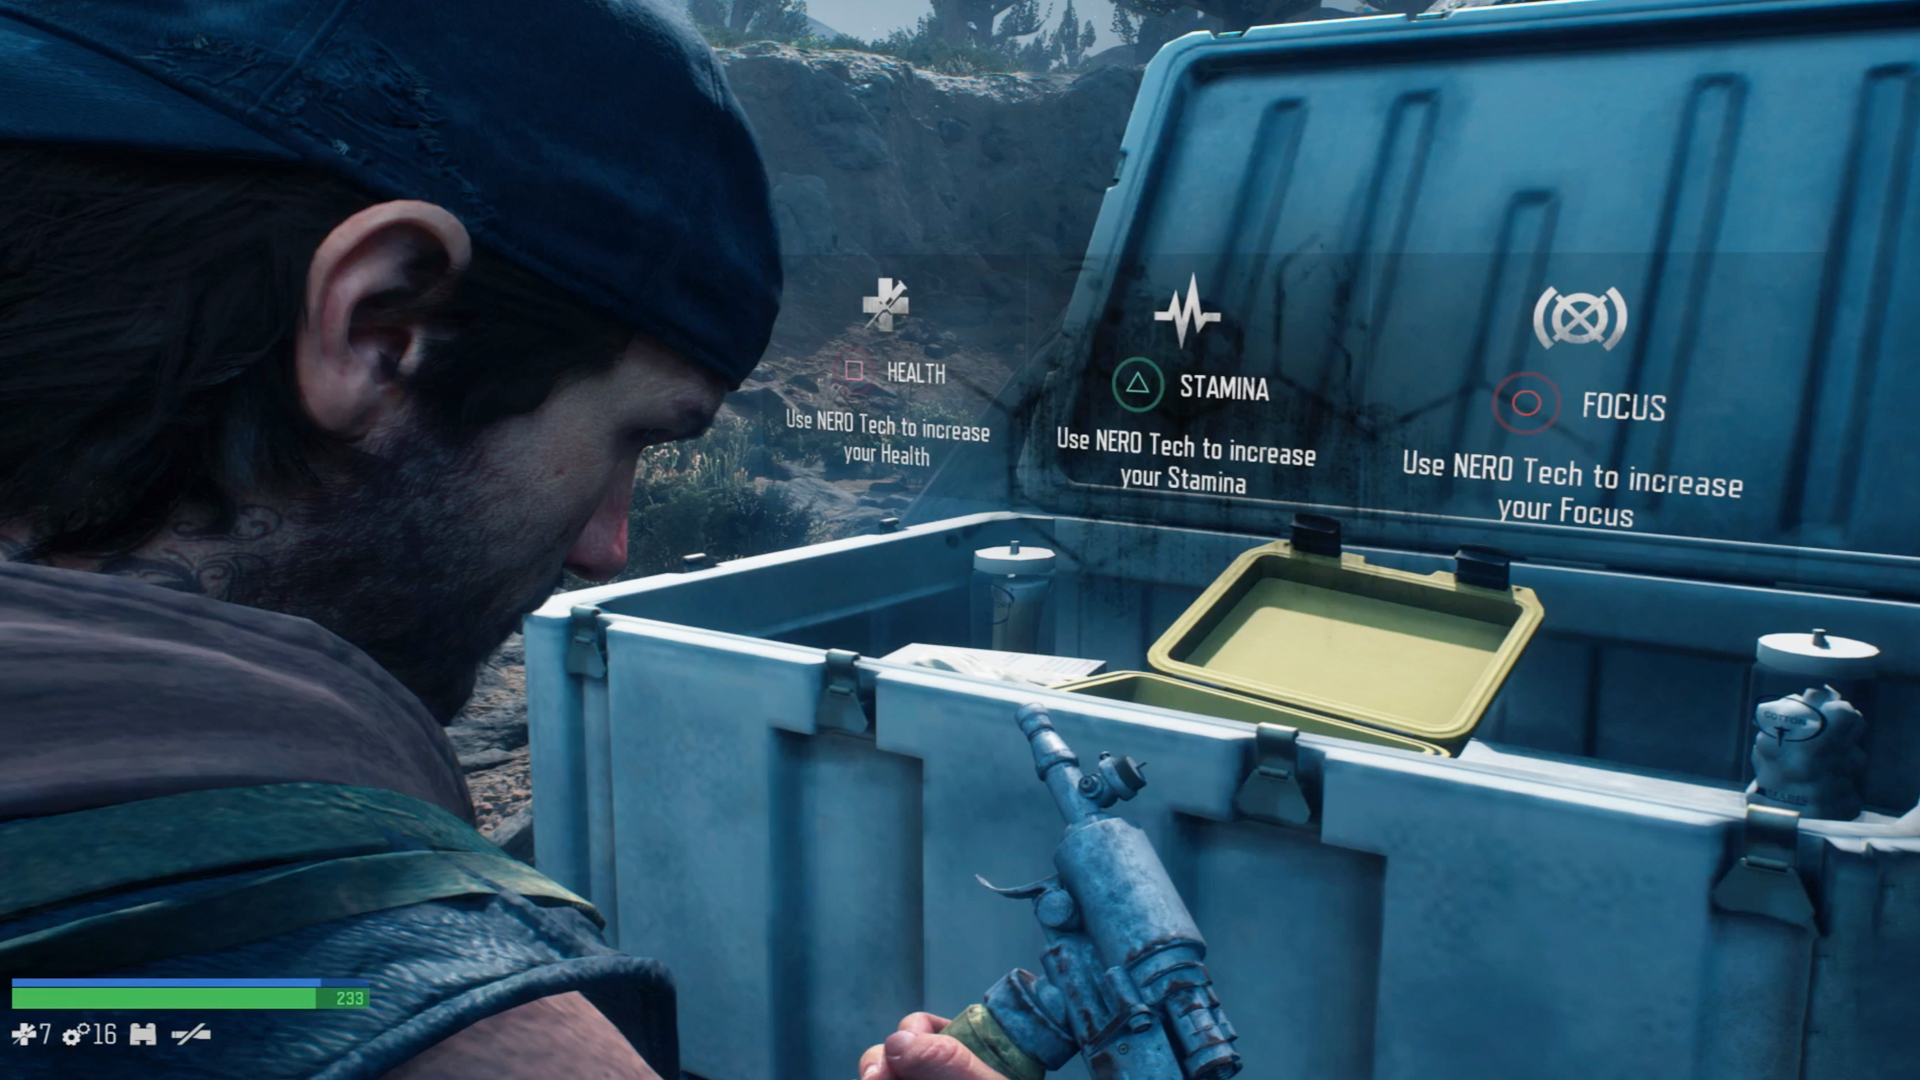 Days Gone NERO Injector locations: where to find all the